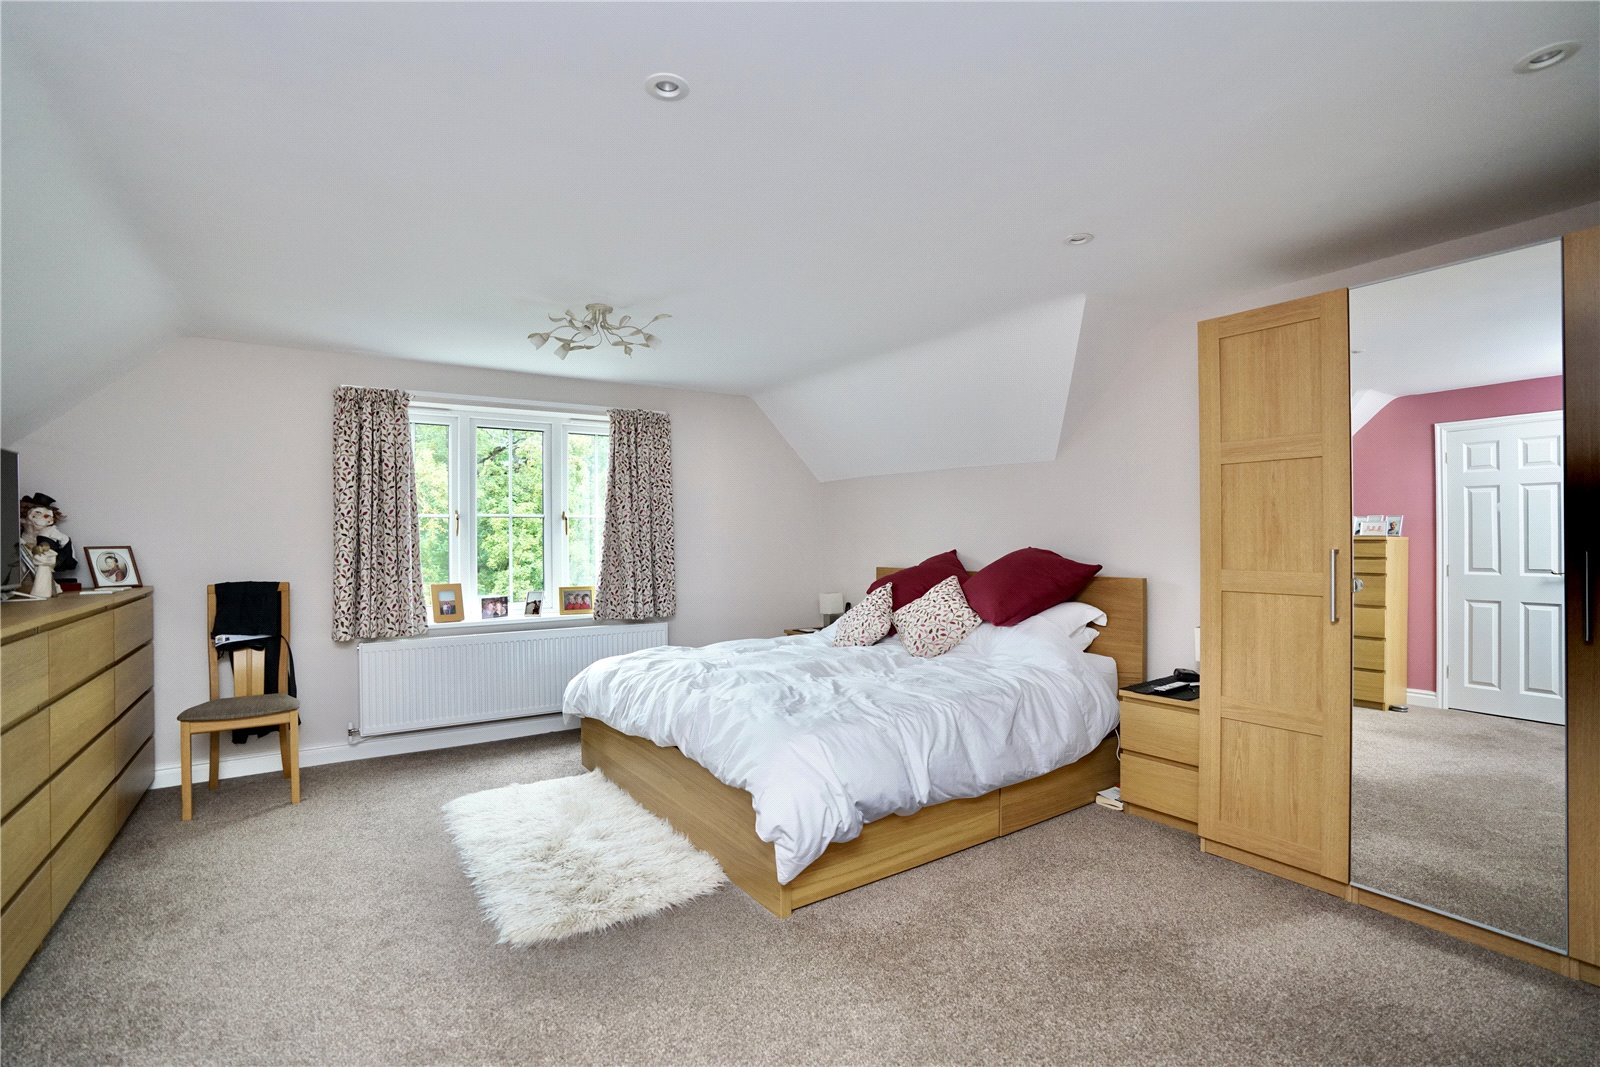 4 bed house for sale in Great Gransden 4